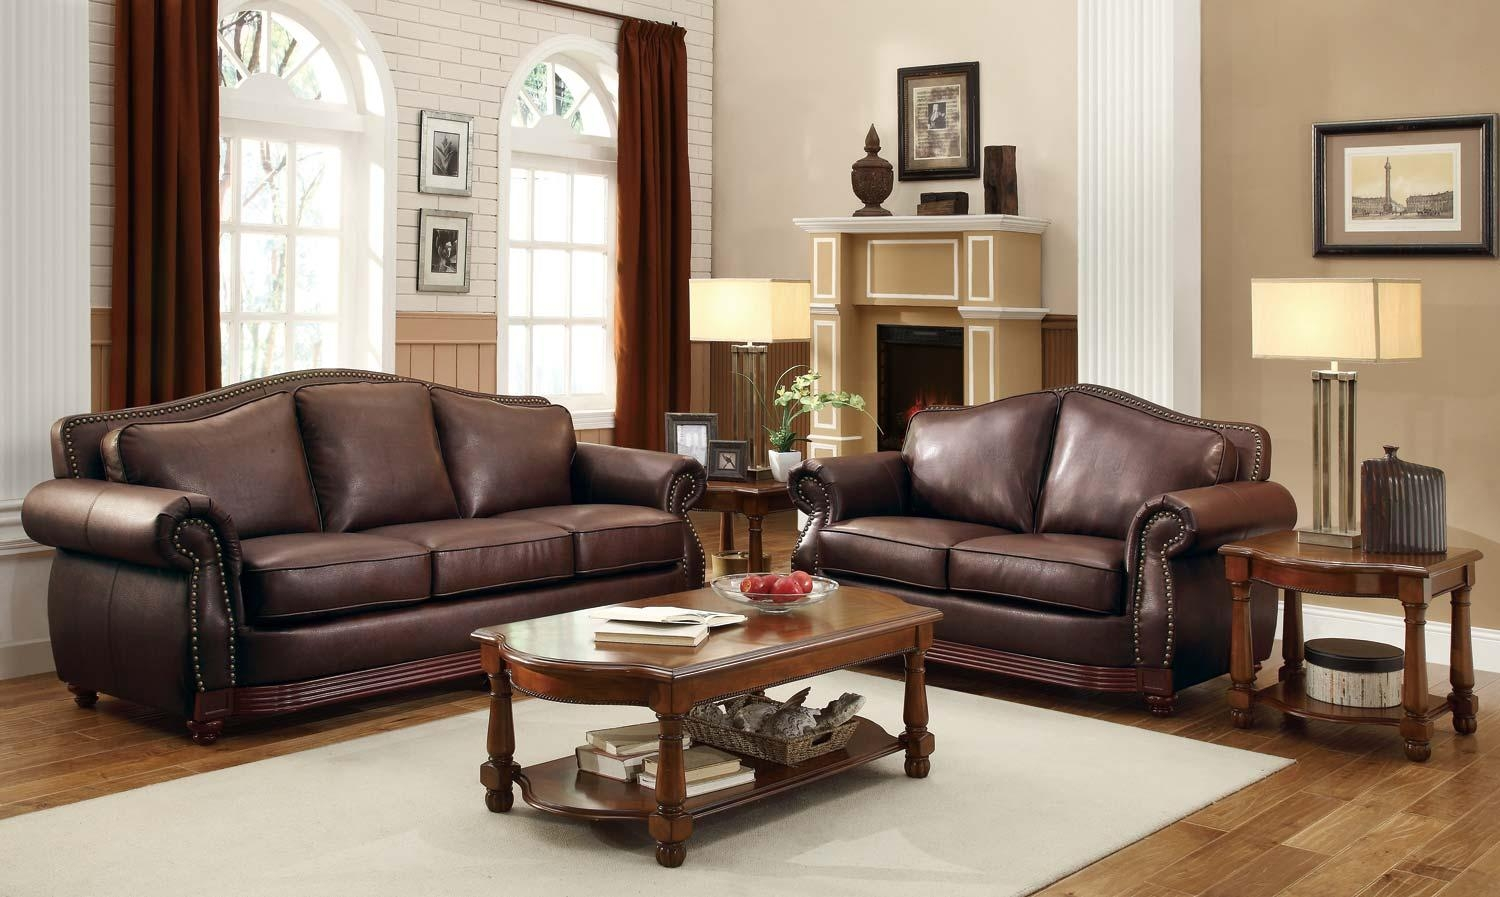 Homelegance Midwood Bonded Leather Sofa Collection – Dark Brown Intended For Bonded Leather Sofas (Image 13 of 20)